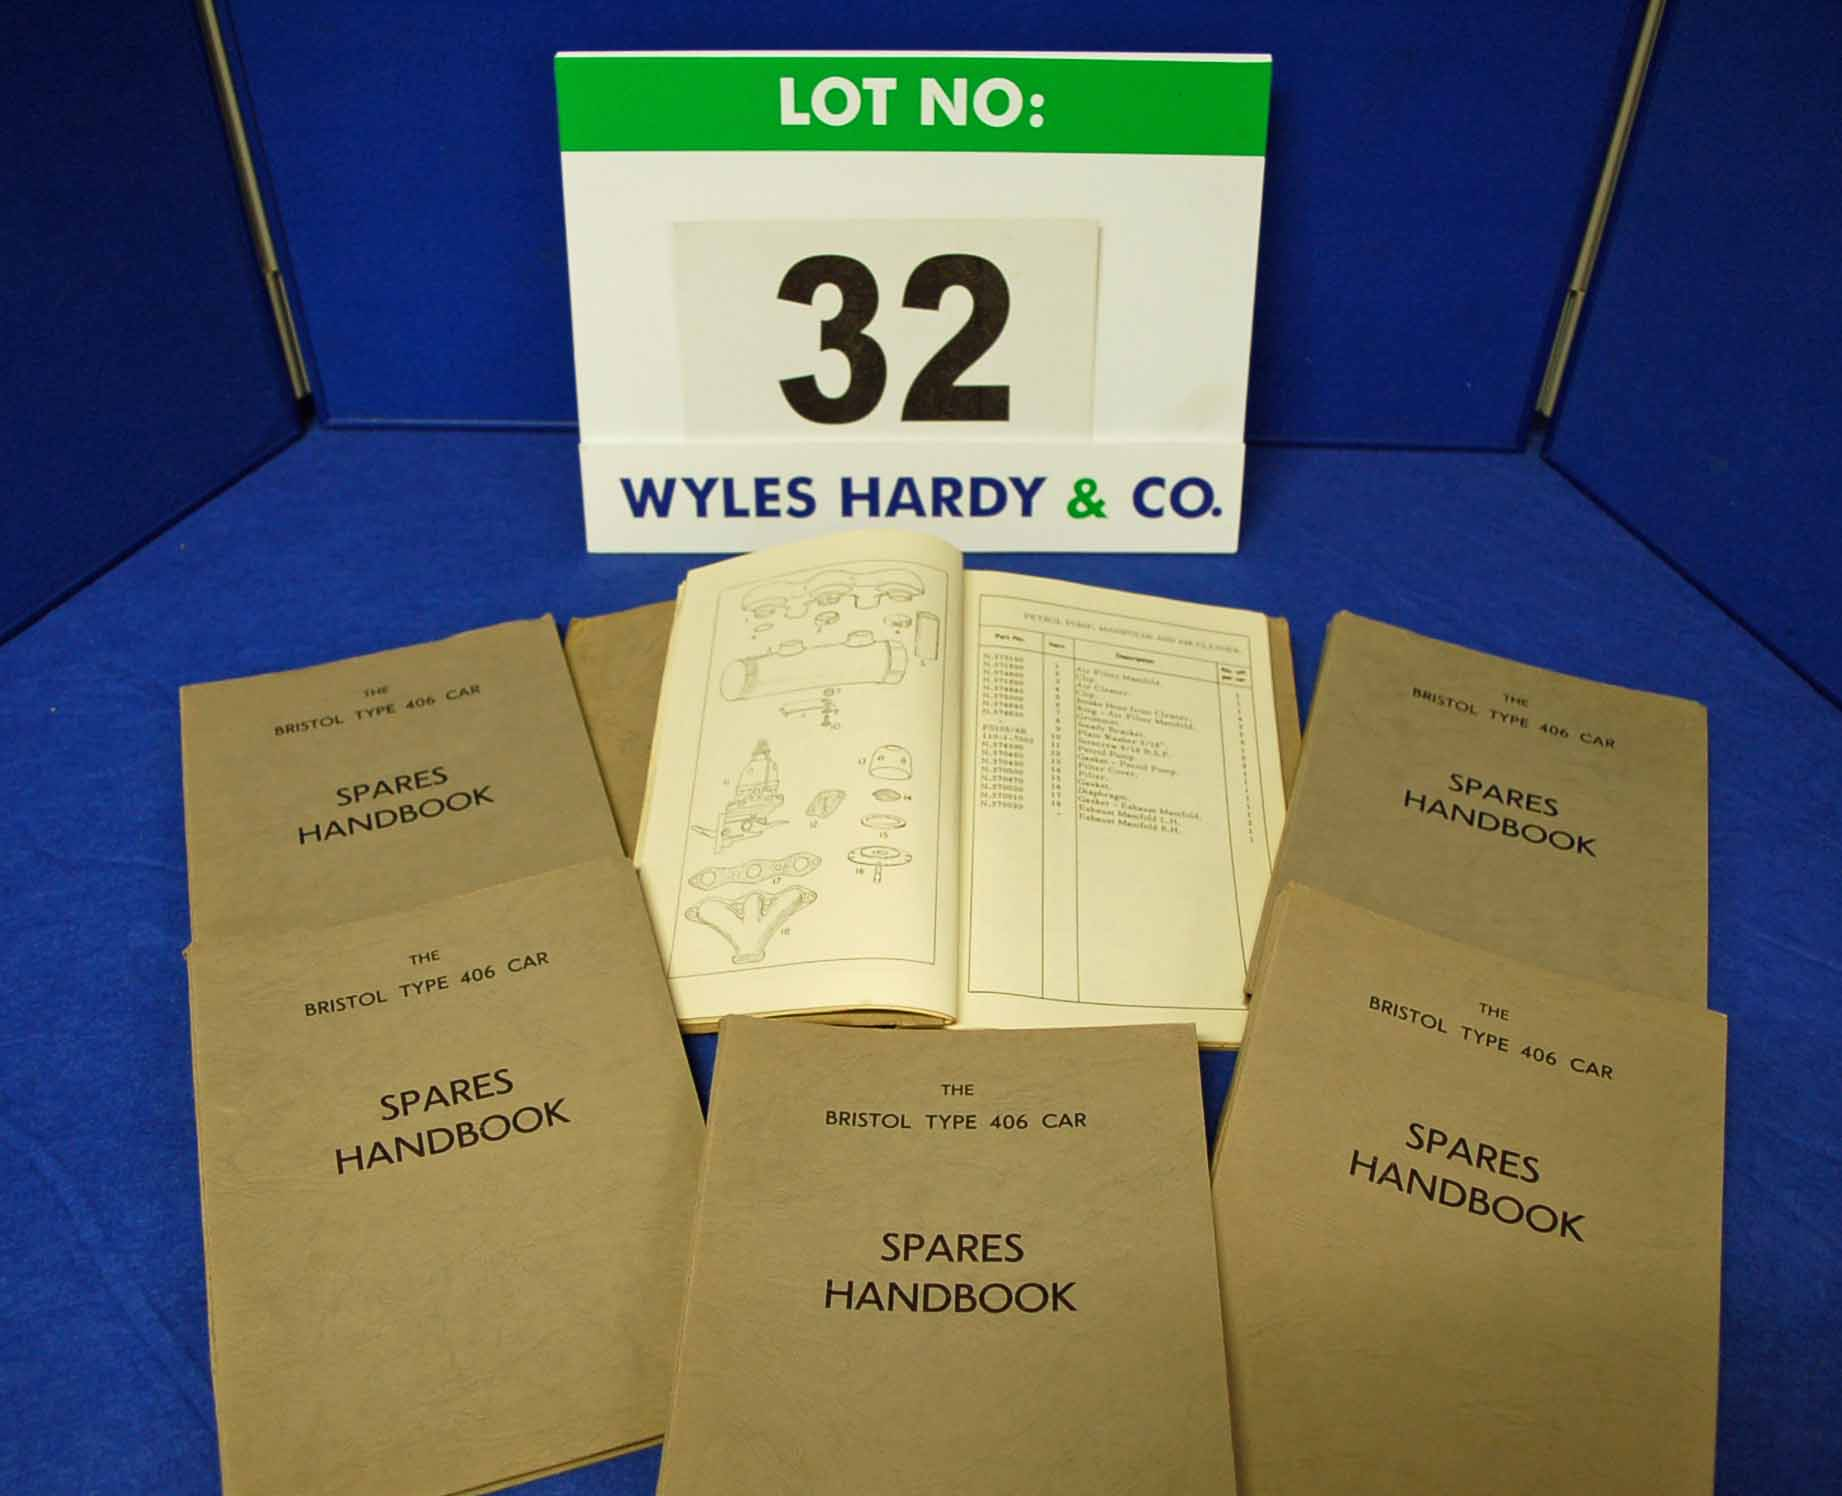 Six Copies of the Spares Handbook for The Bristol Type 406 Car